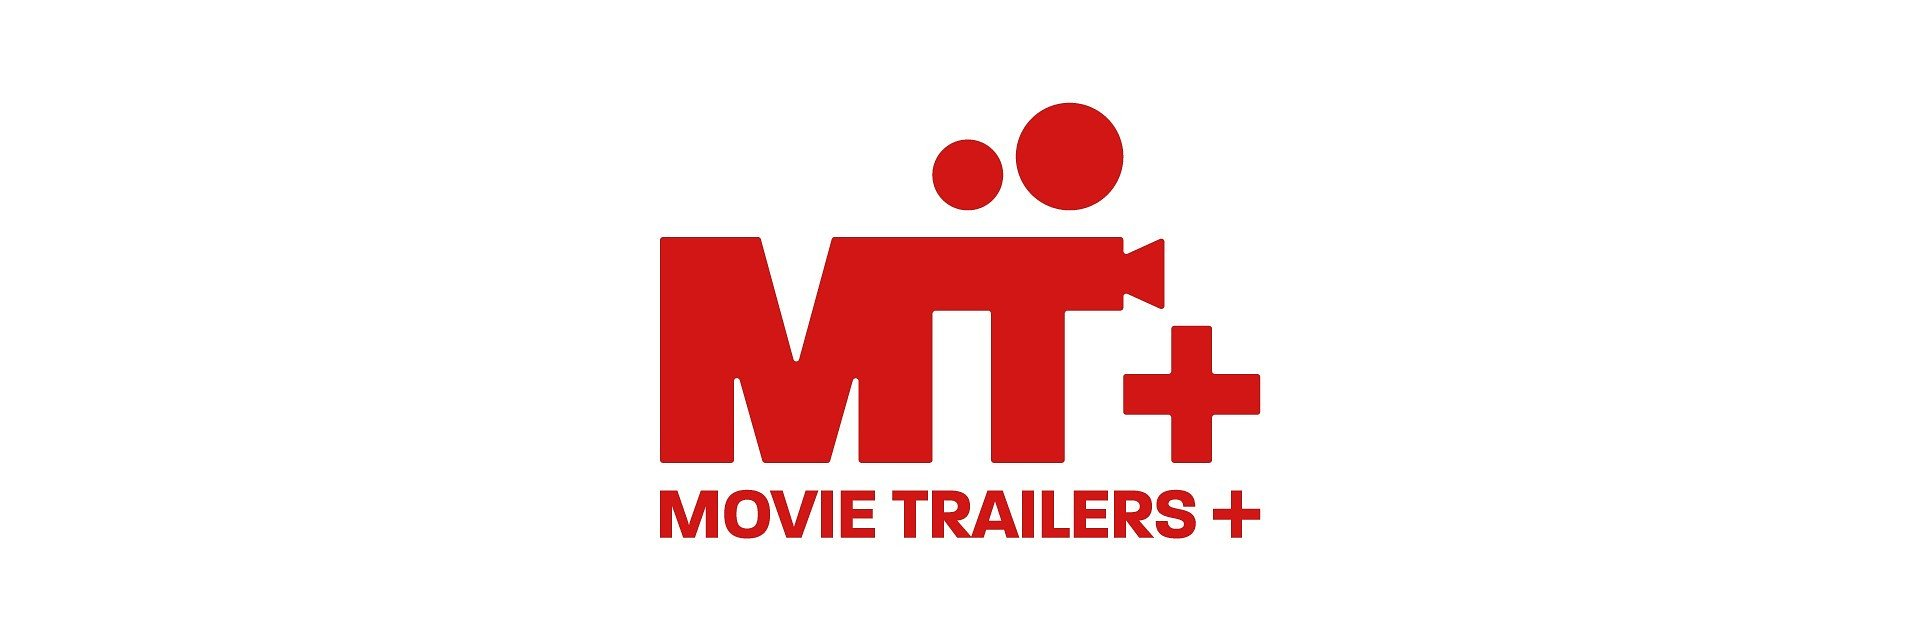 """Loop Media, Inc. Launches New """"Movie Trailers+"""" Streaming Channel"""